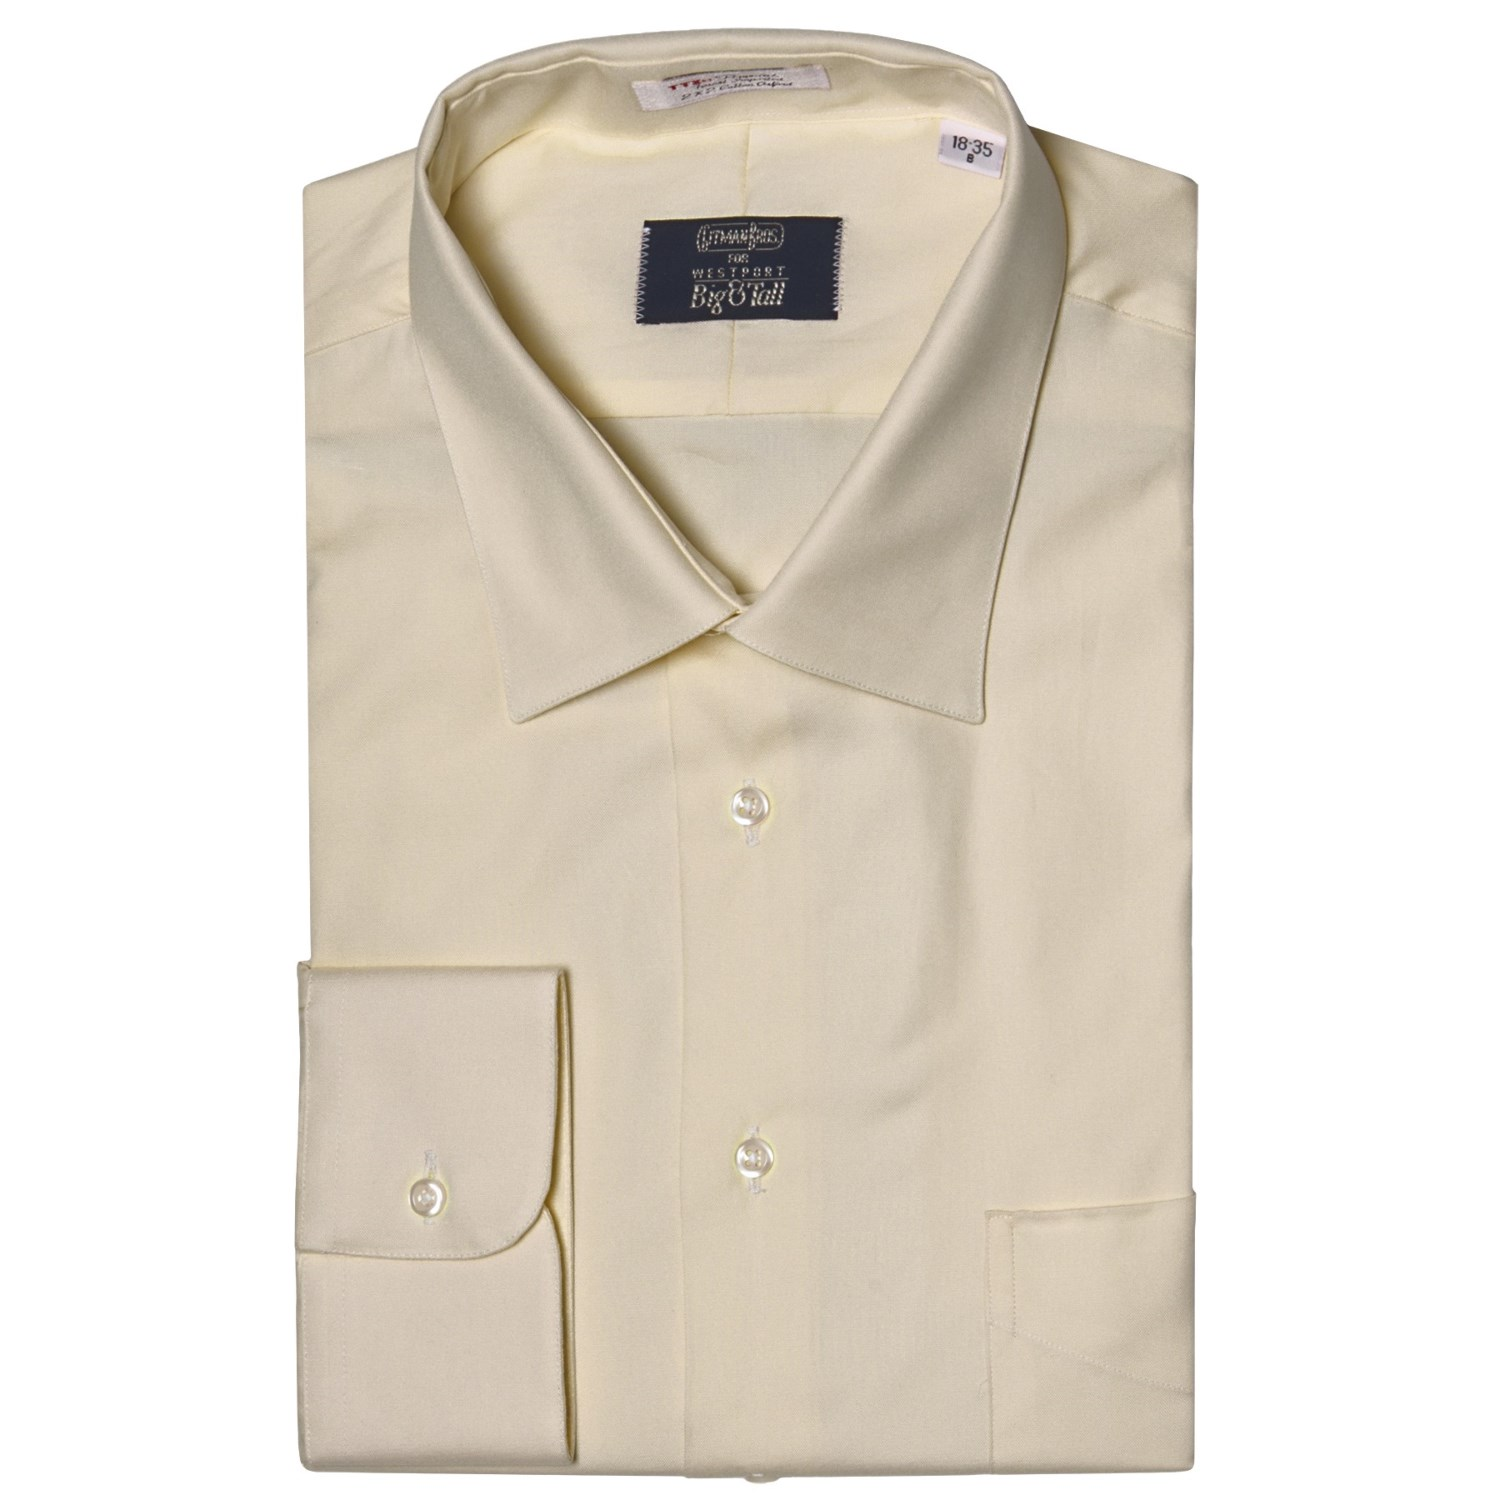 westport solid dress shirt spread collar long sleeve